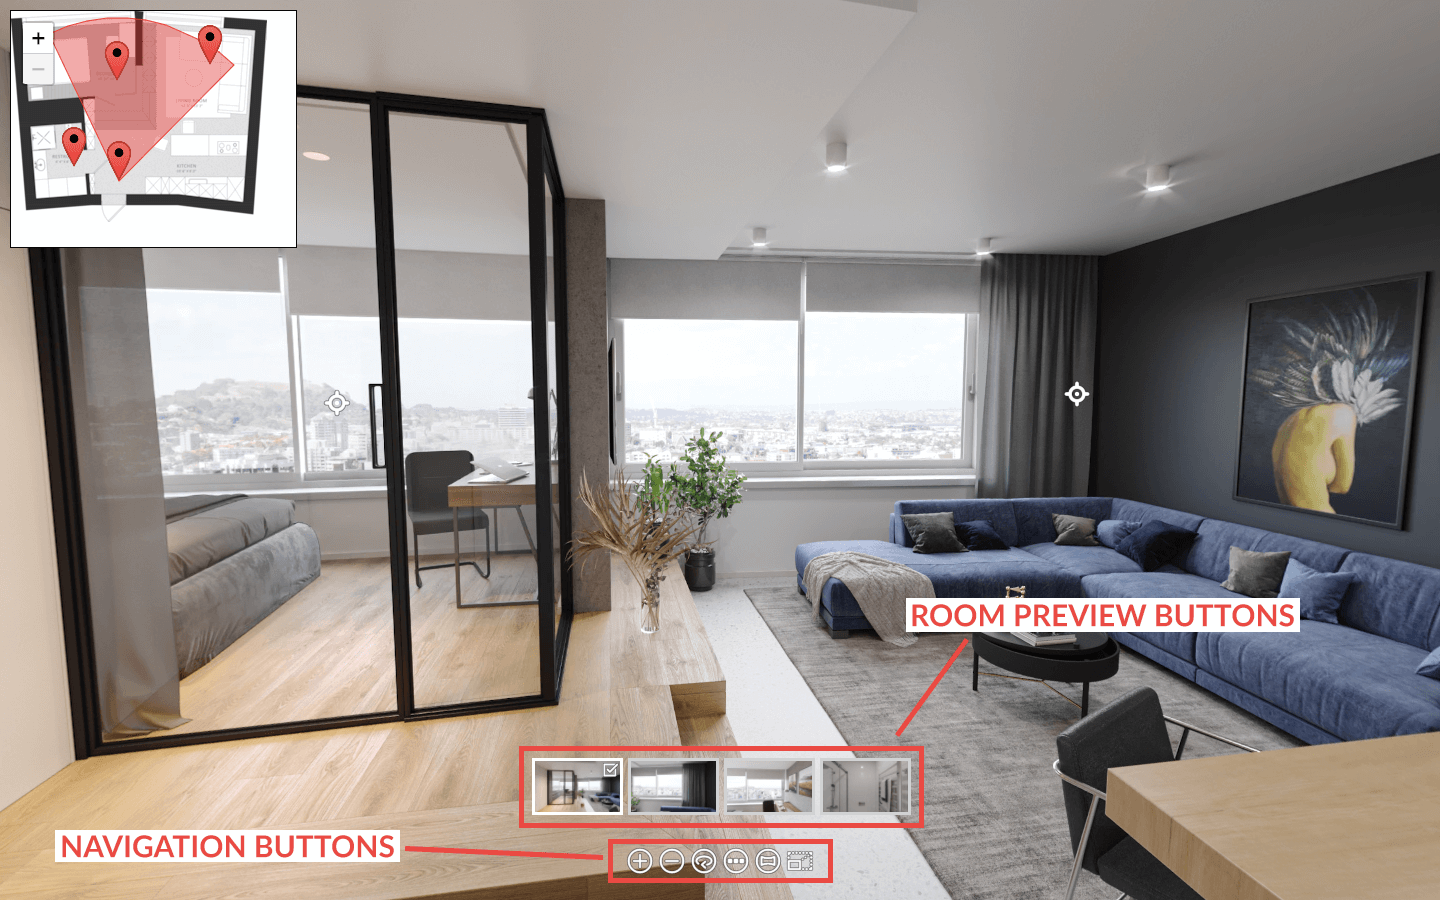 Navigation and Room Preview Buttons in Virtual Tours